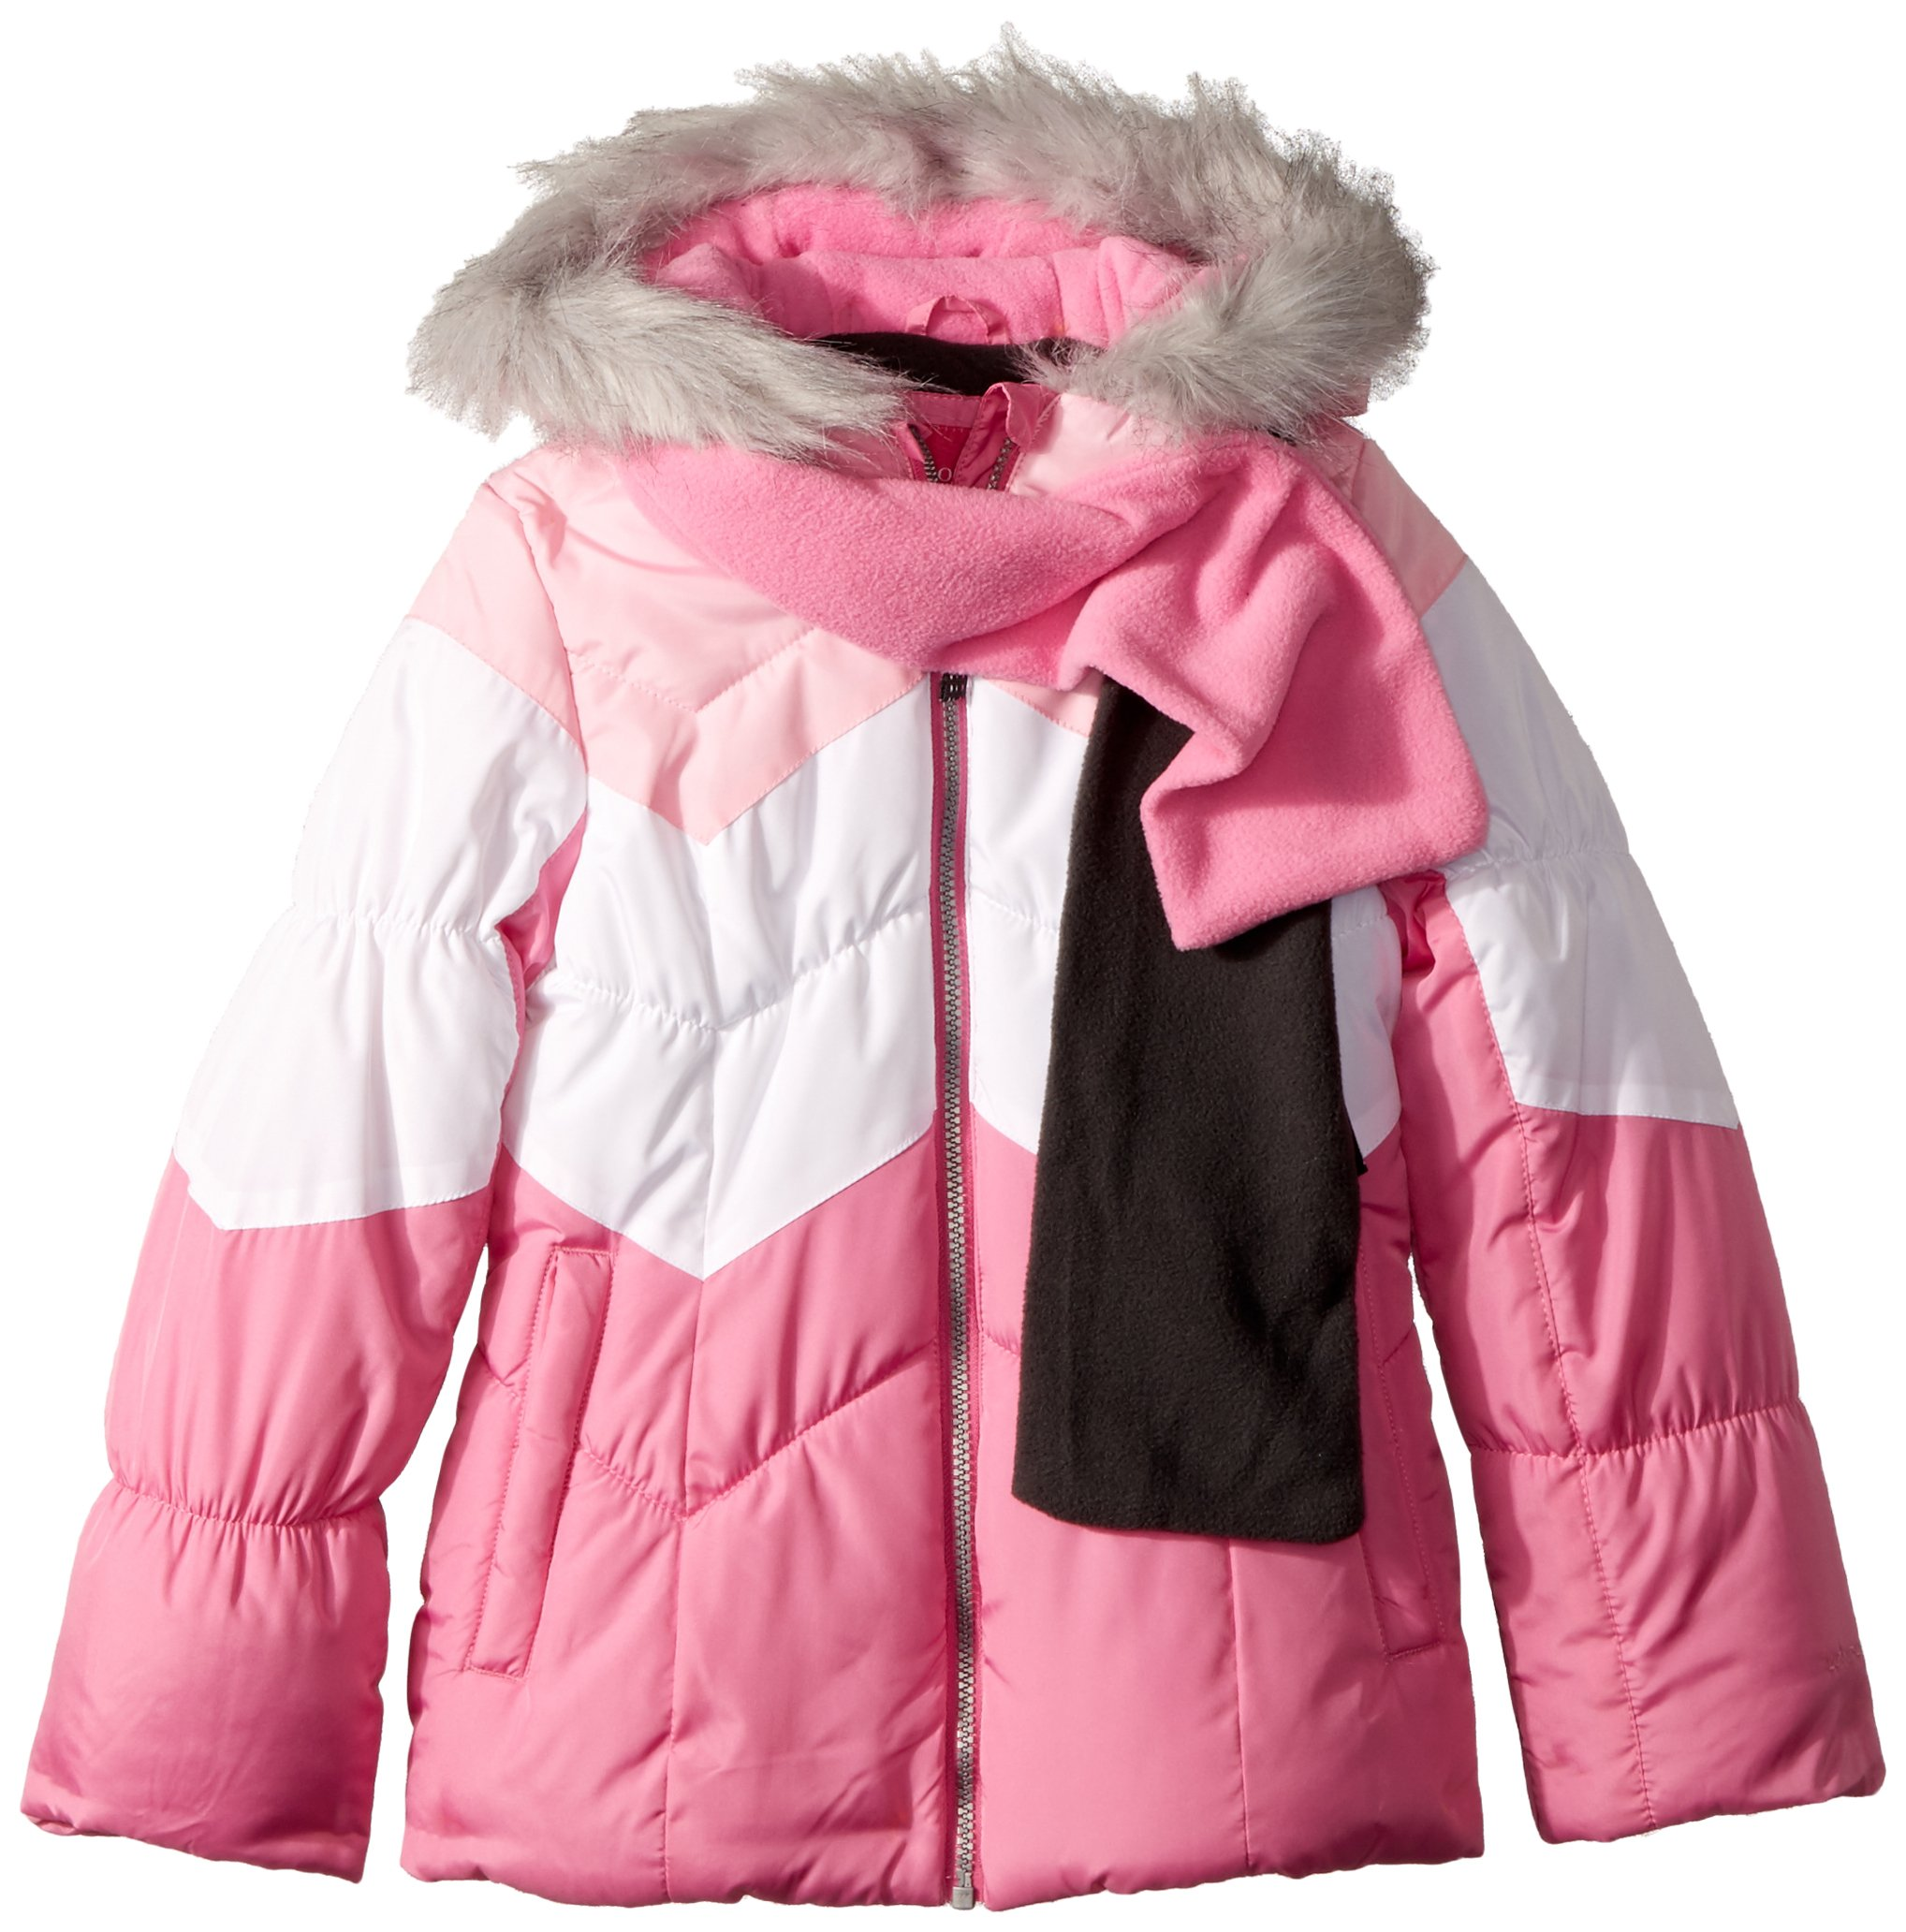 London Fog Big Girls' Color Blocked Puffer Jacket Coat with Scarf, Fusion Pink, 10/12